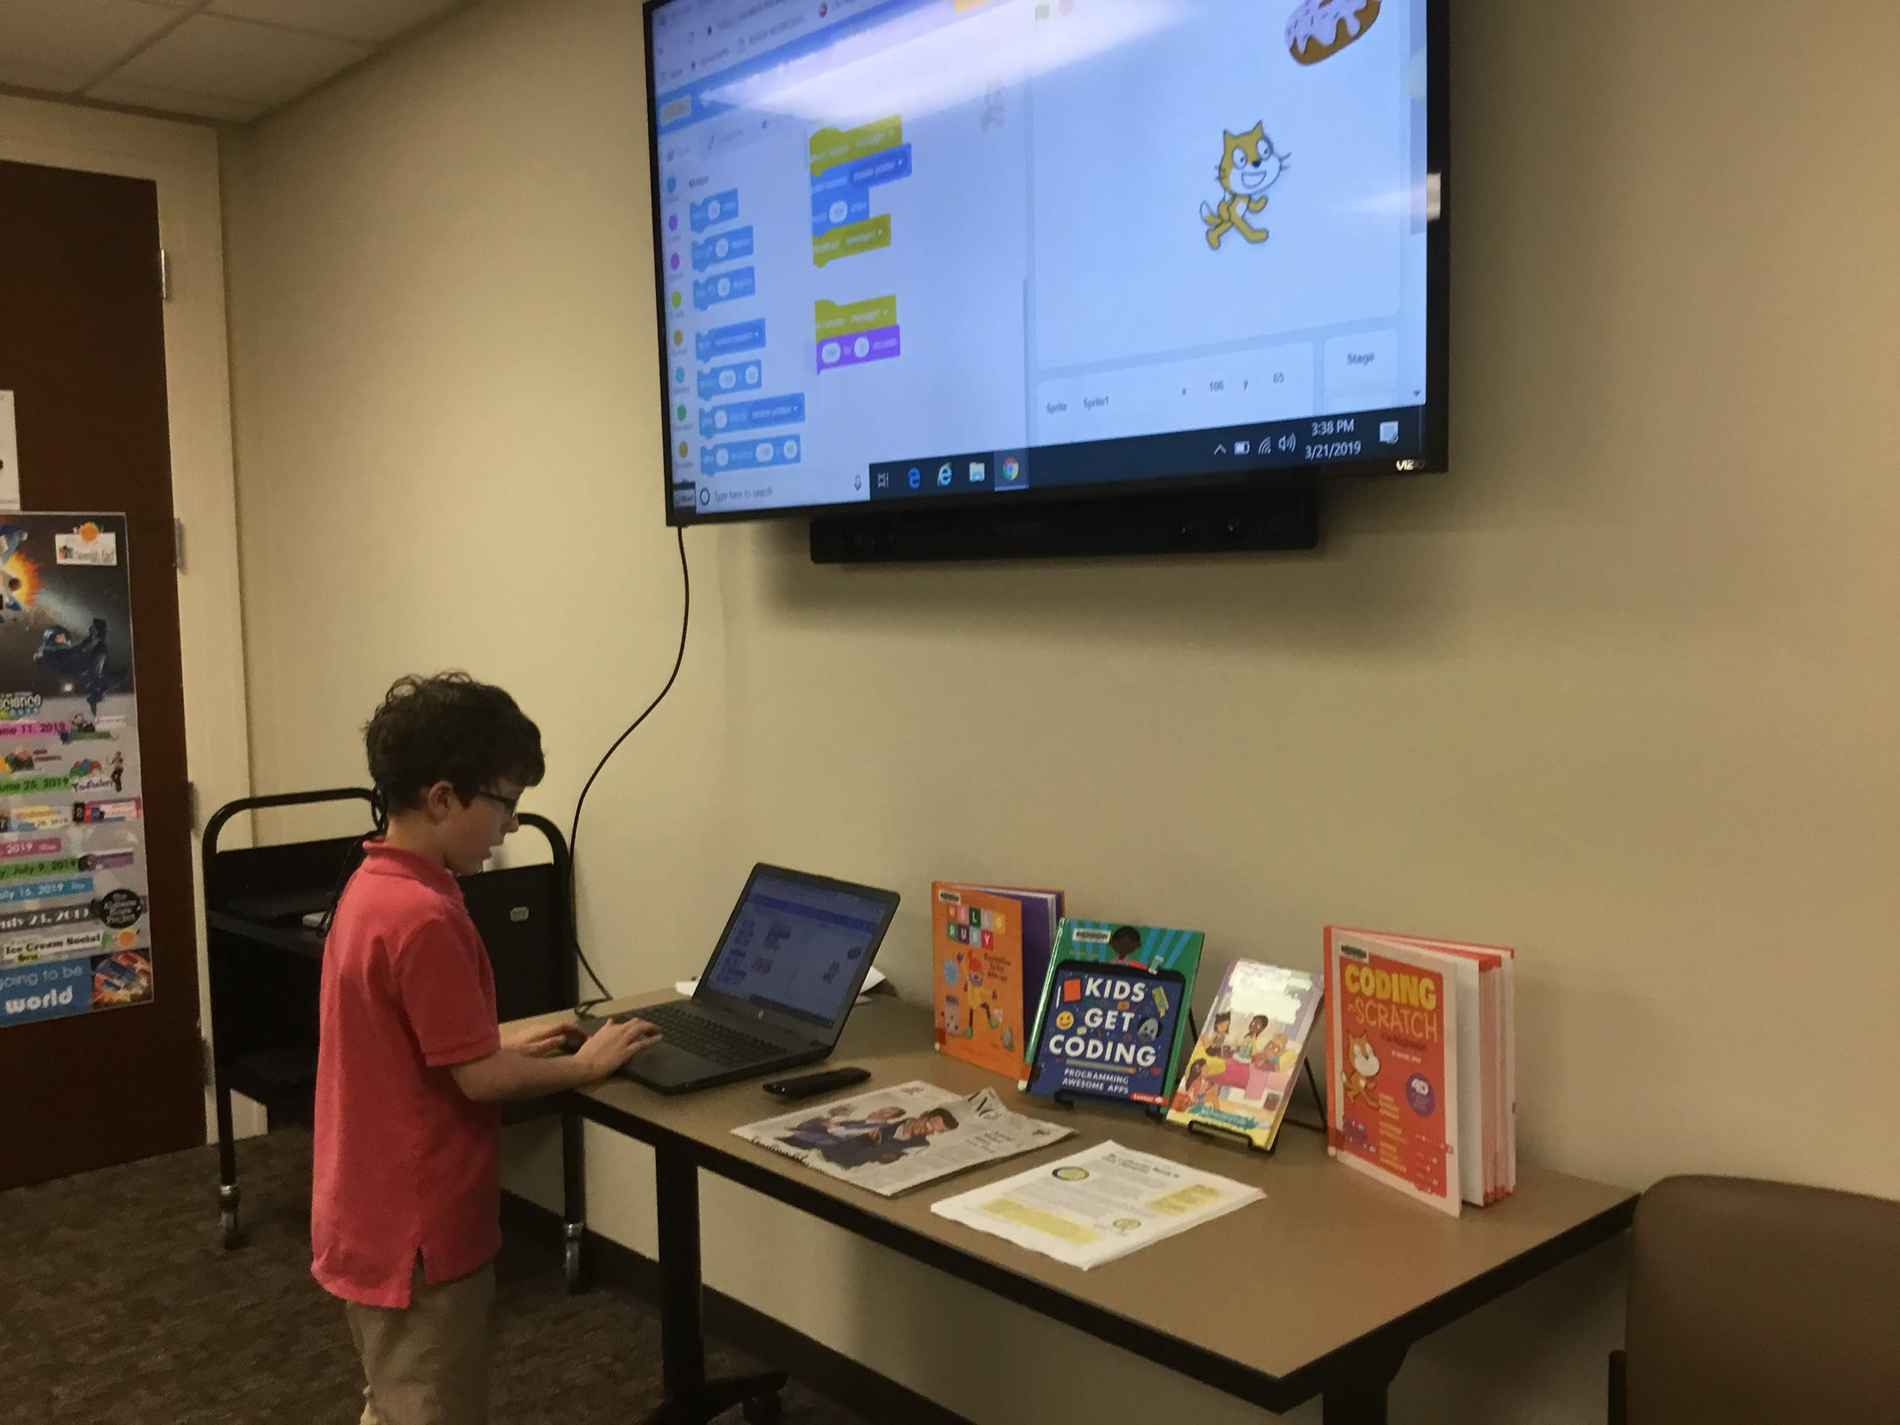 Child at table with coding books on display working on laptop in front of large display screen